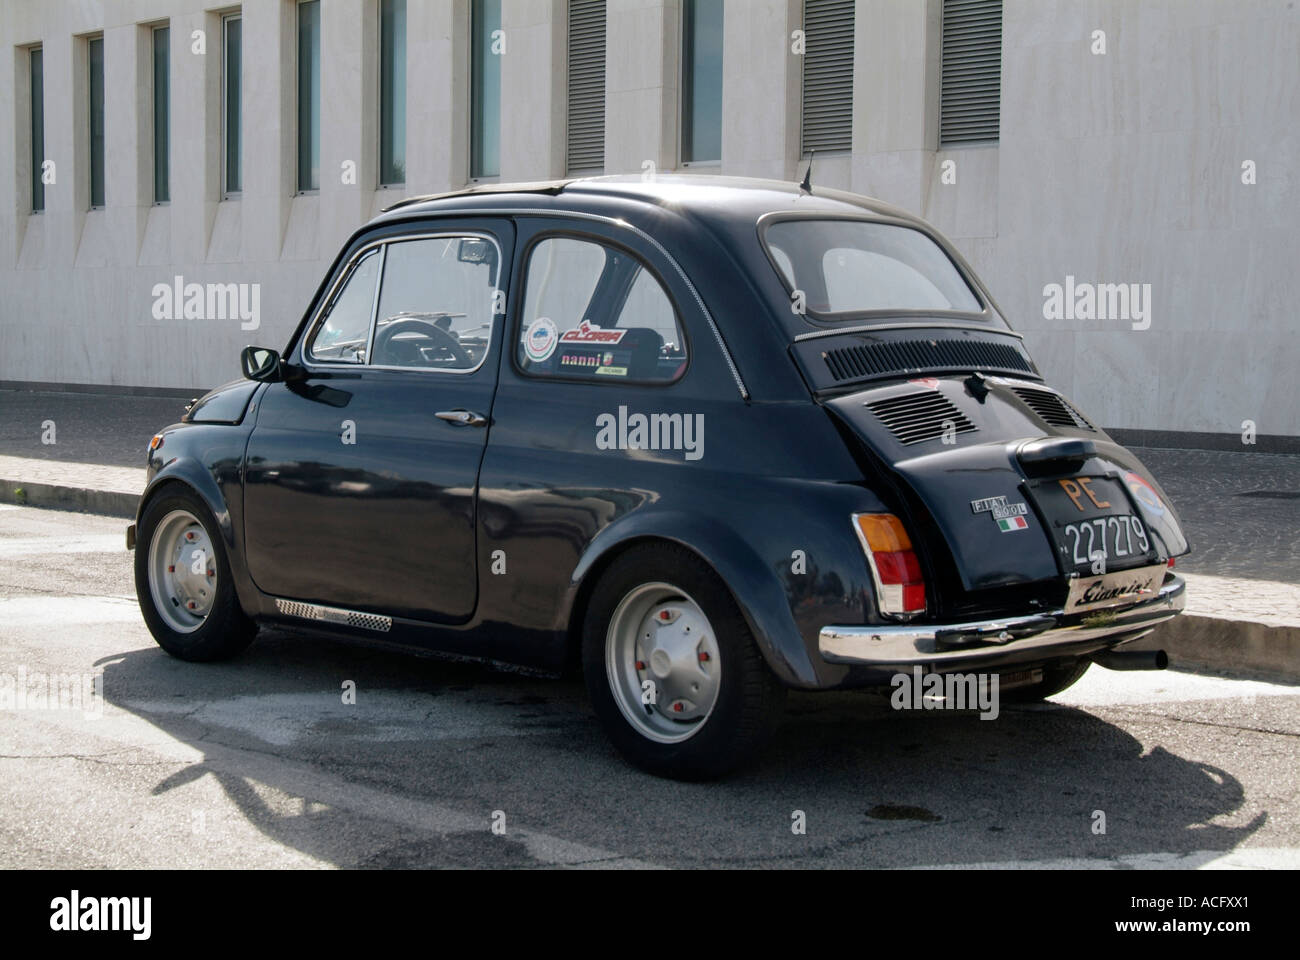 Fiat 500 Car City Small Cars Tiny Italian Cars Industry